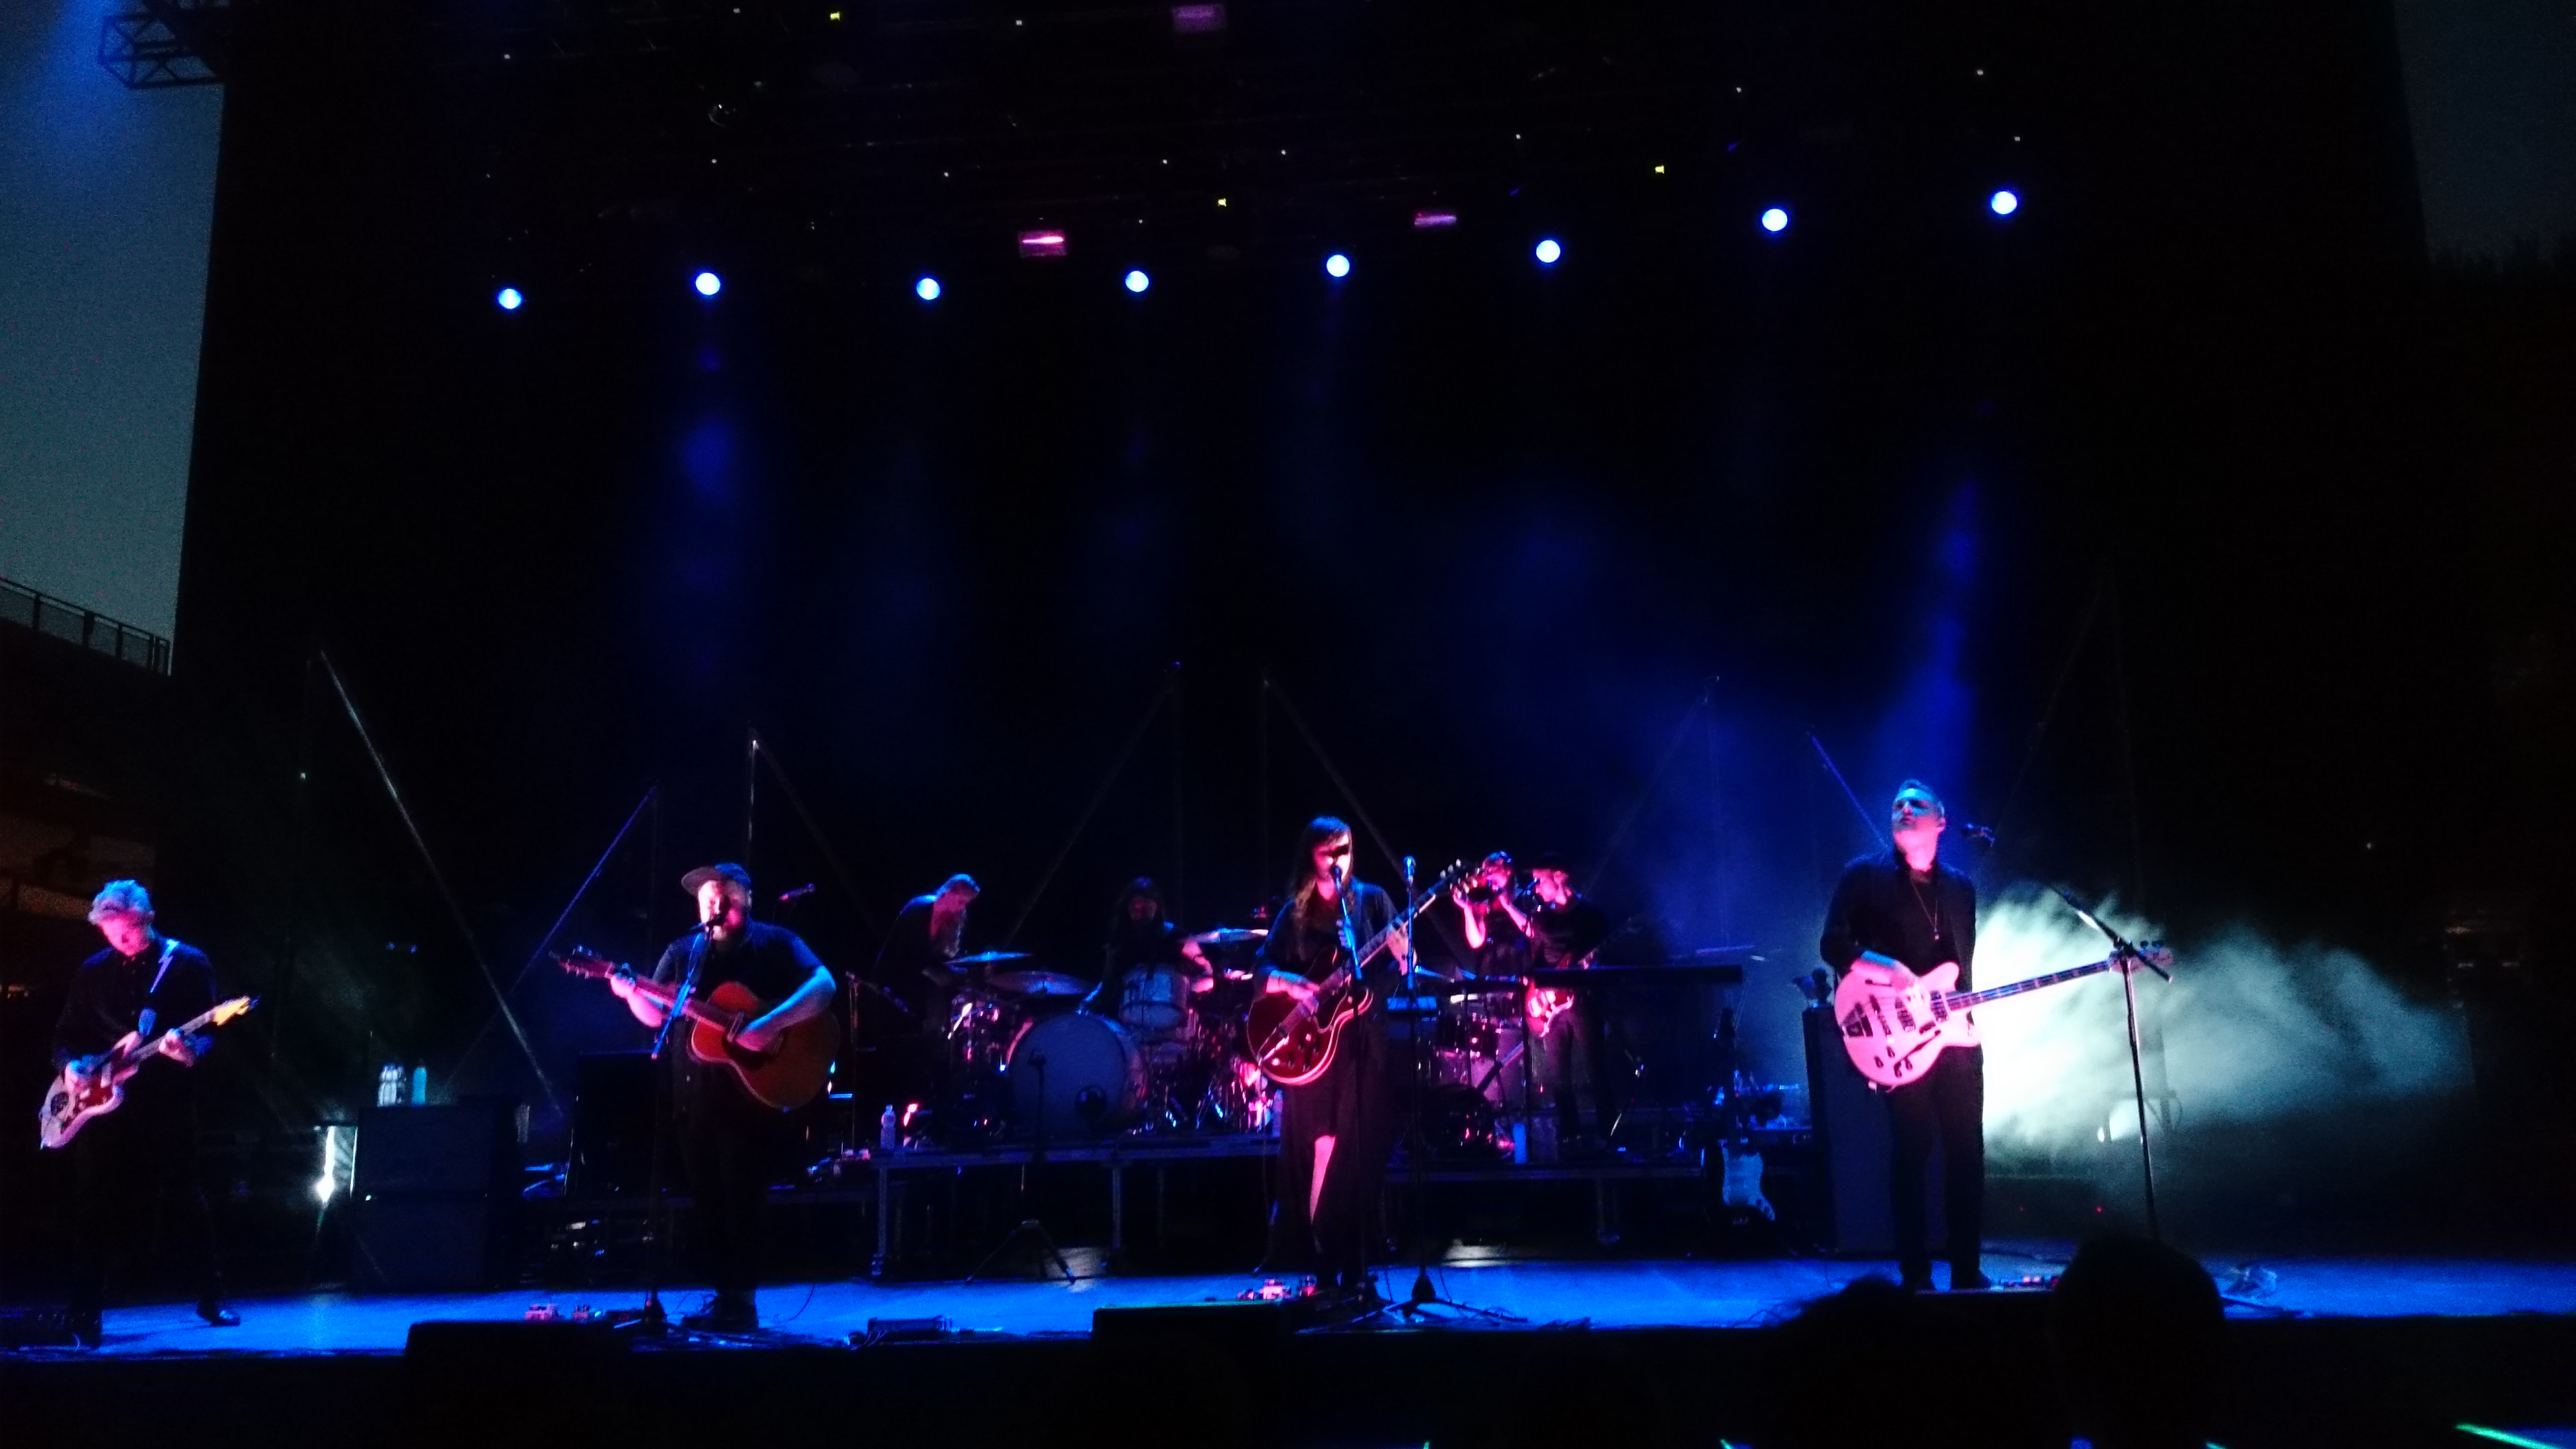 Of Monsters And Men @ Auditorium - 08 07 2015